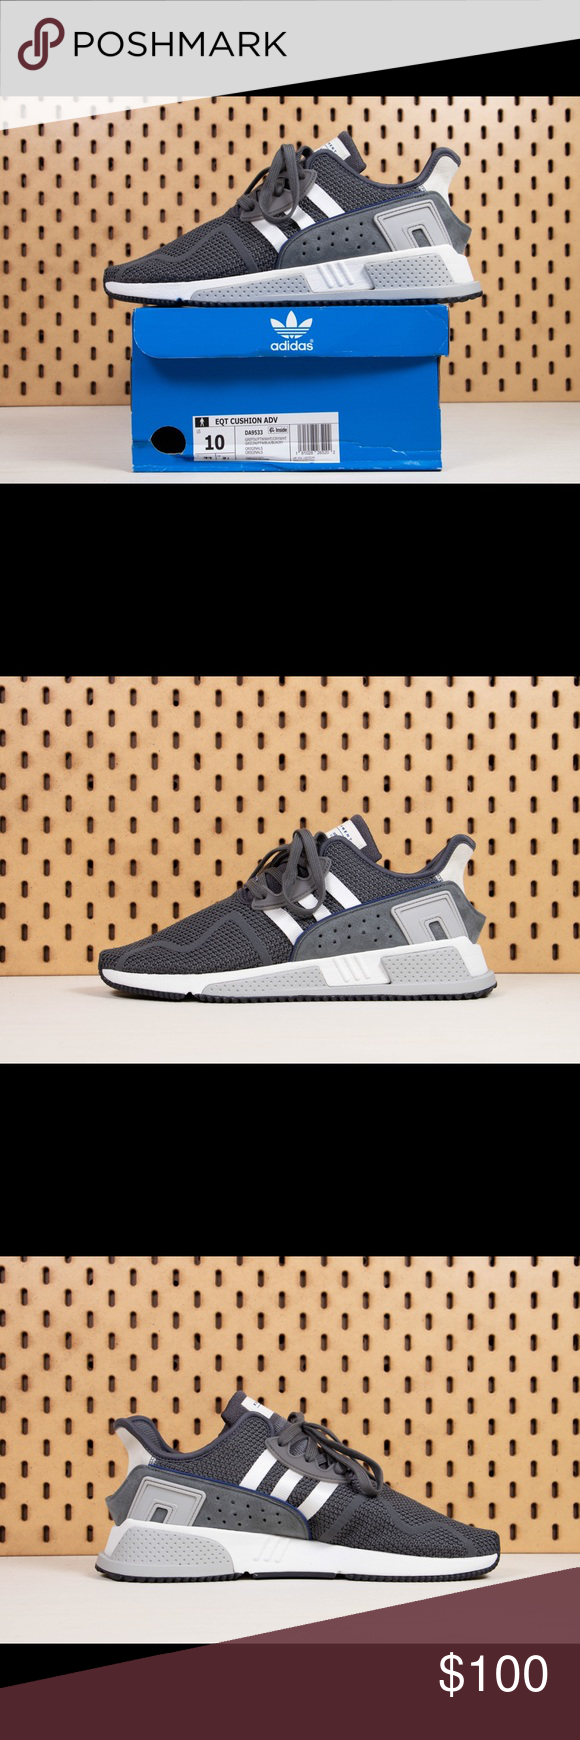 sneakers for cheap f01b6 946d4 Adidas Originals EQT Cushion ADV Size SZ 10 ✓ 📦 Adidas Adidas Originals EQT  Cushion ADV Style DA9533 ✓ 📦 adidas Shoes Sneakers